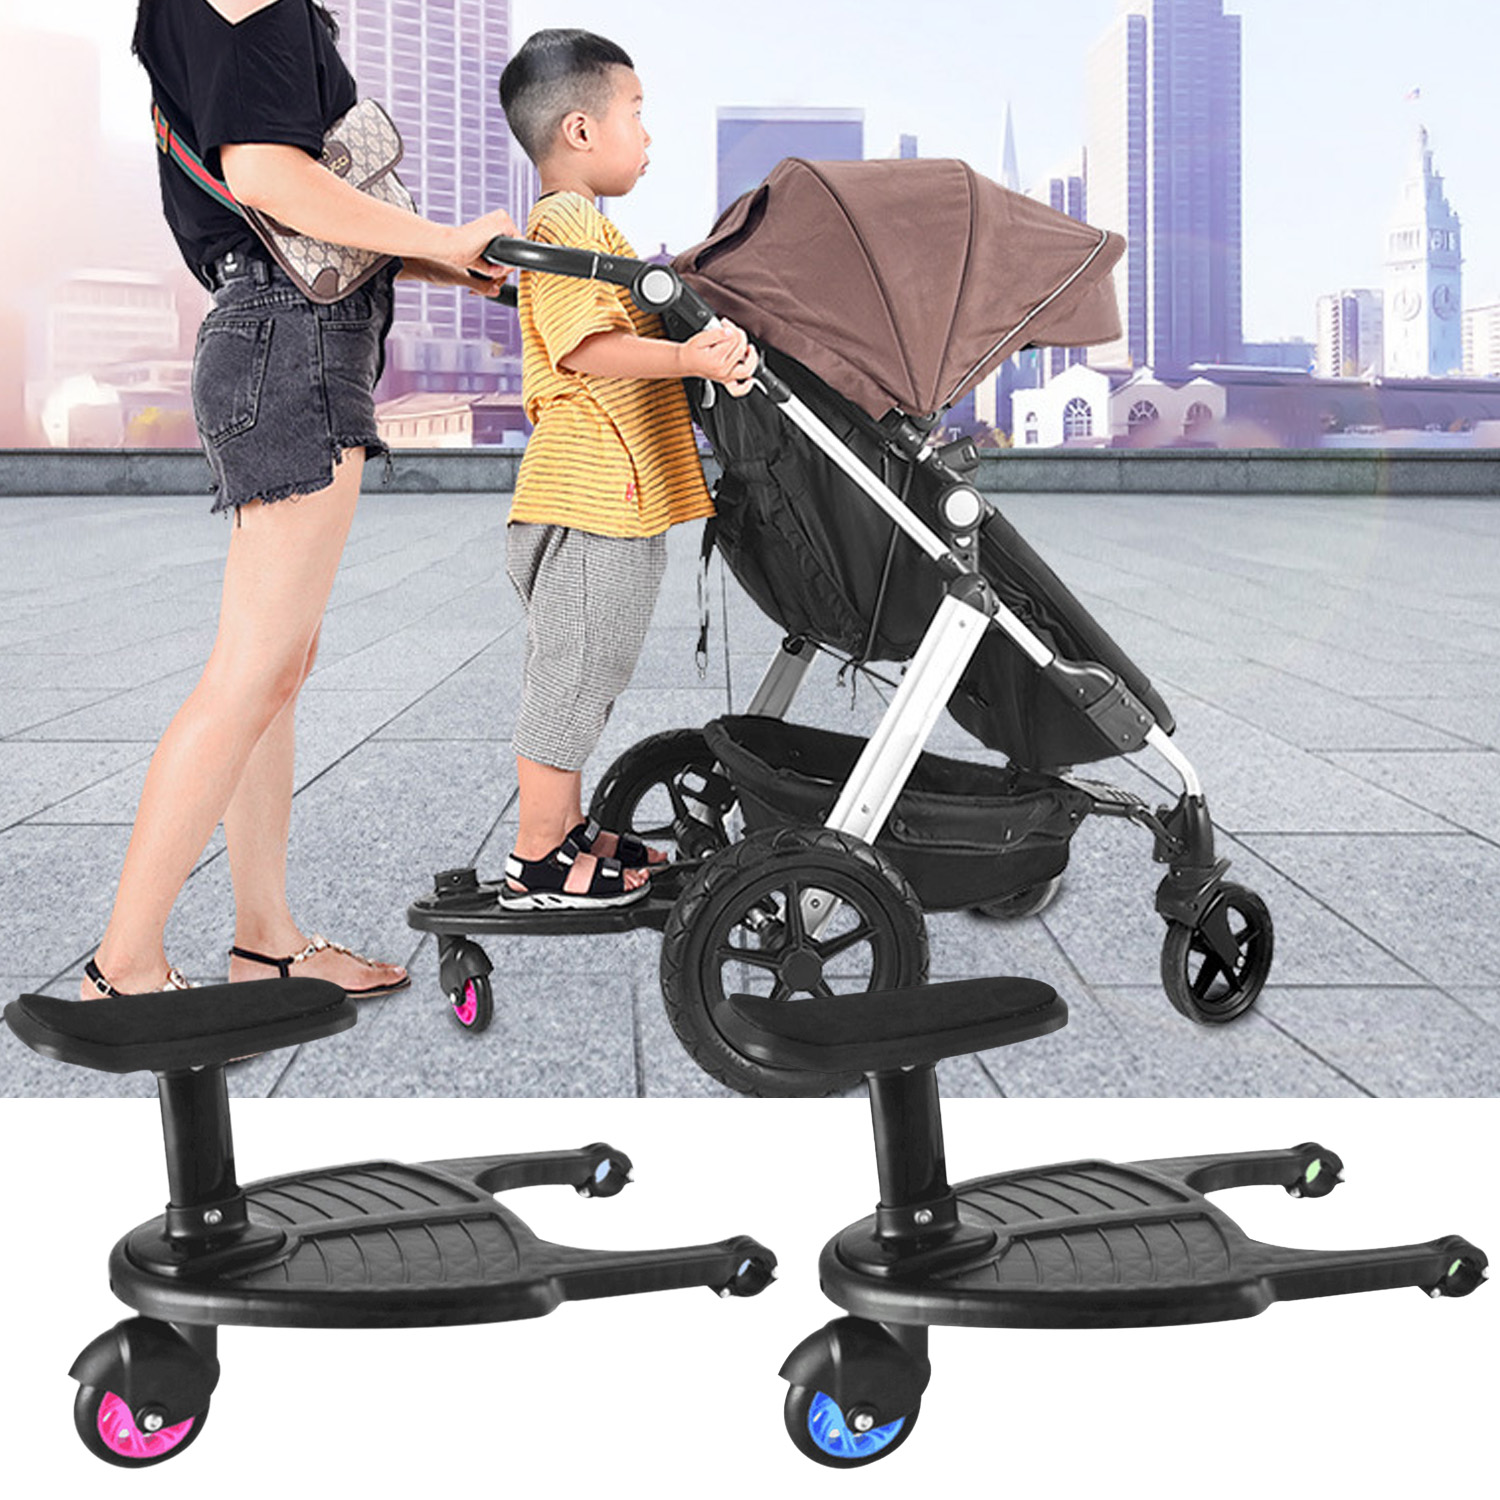 Stroller Auxiliary Pedal Wheeled Board Stroller Ride On Board With Detachable Seat For 3-7 Years Kids